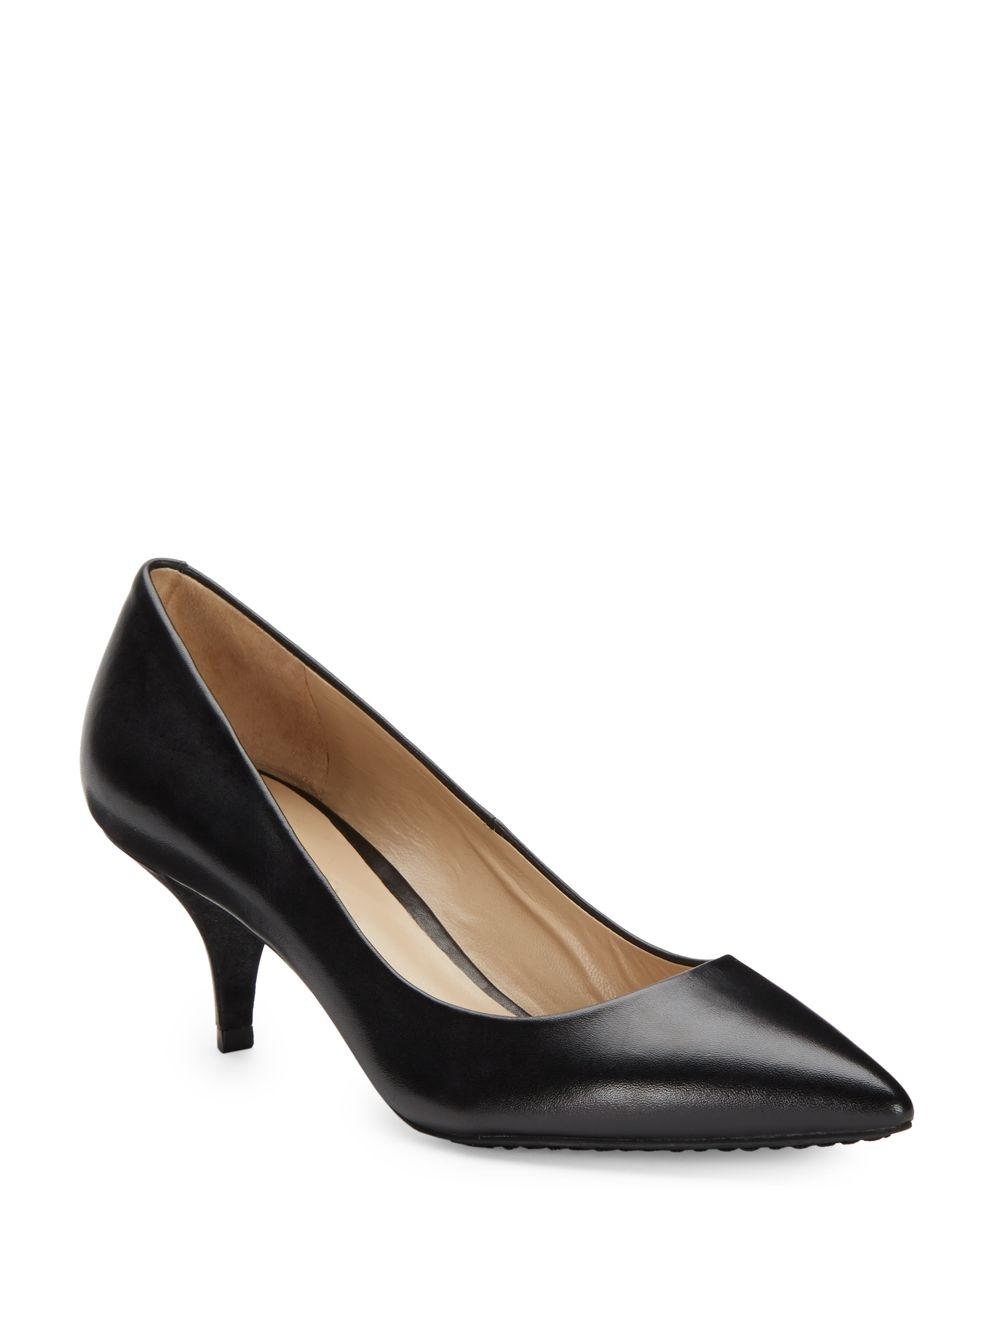 Black Leather Kitten Heel Pumps - Qu Heel